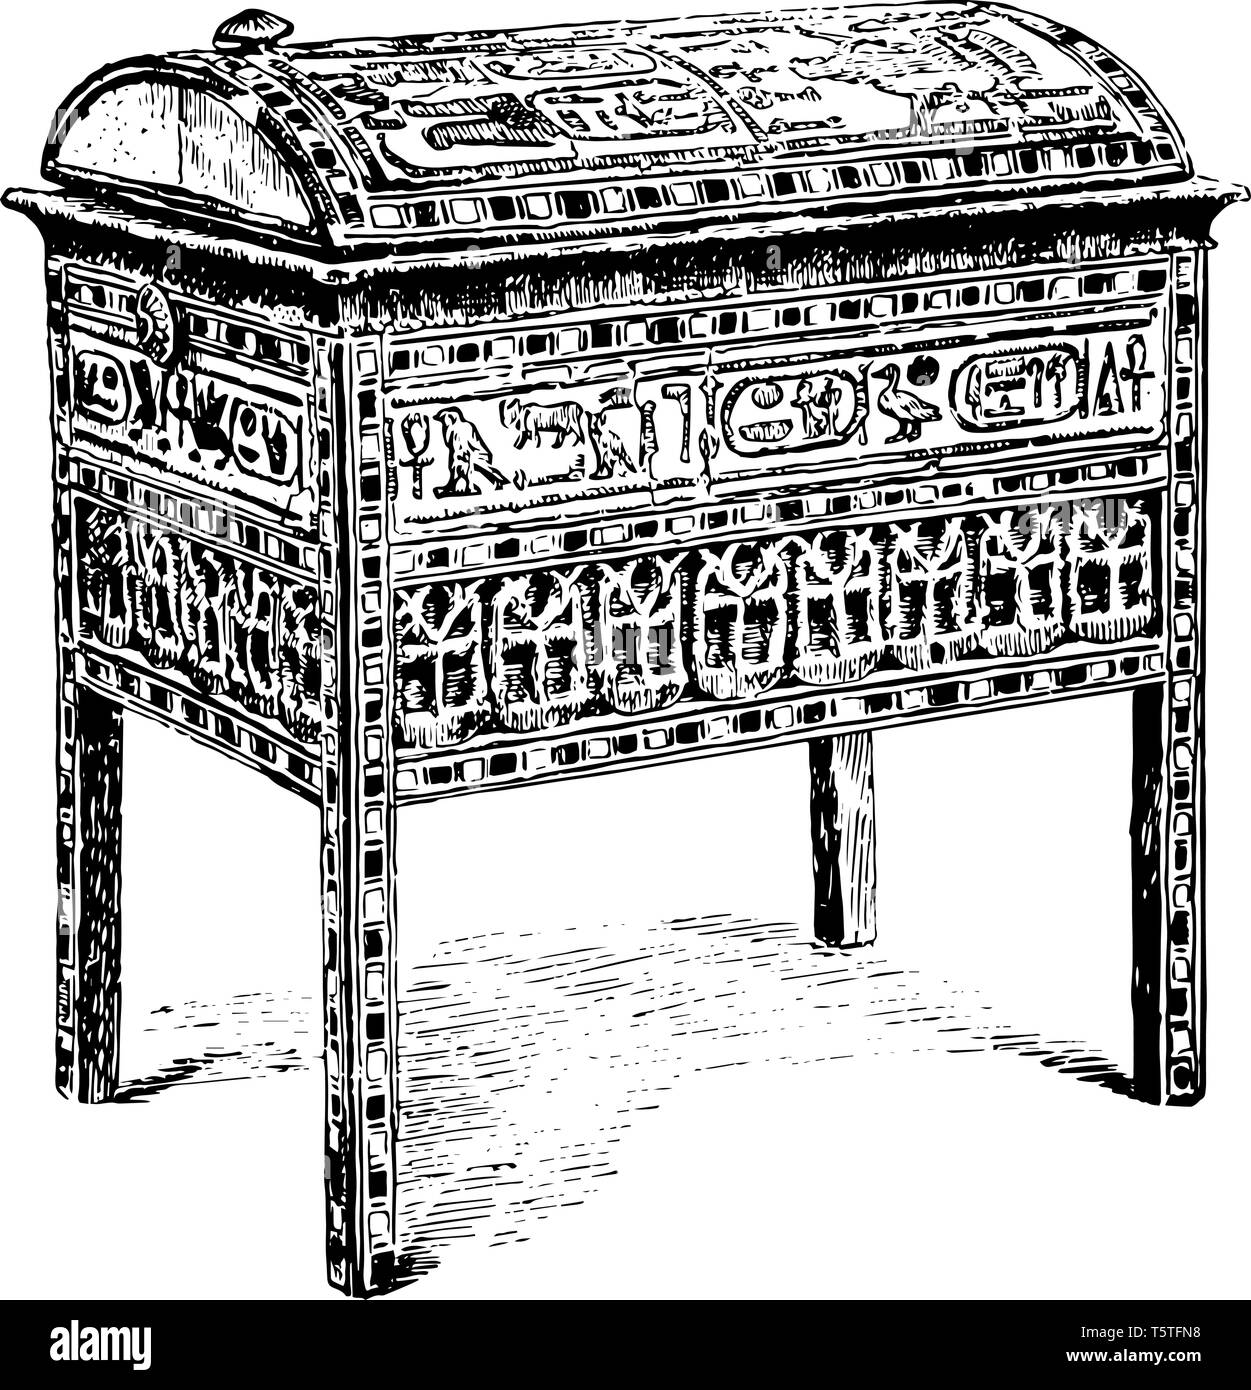 A jewel casket used by the wife of King Seti I, vintage line drawing or engraving illustration. - Stock Image